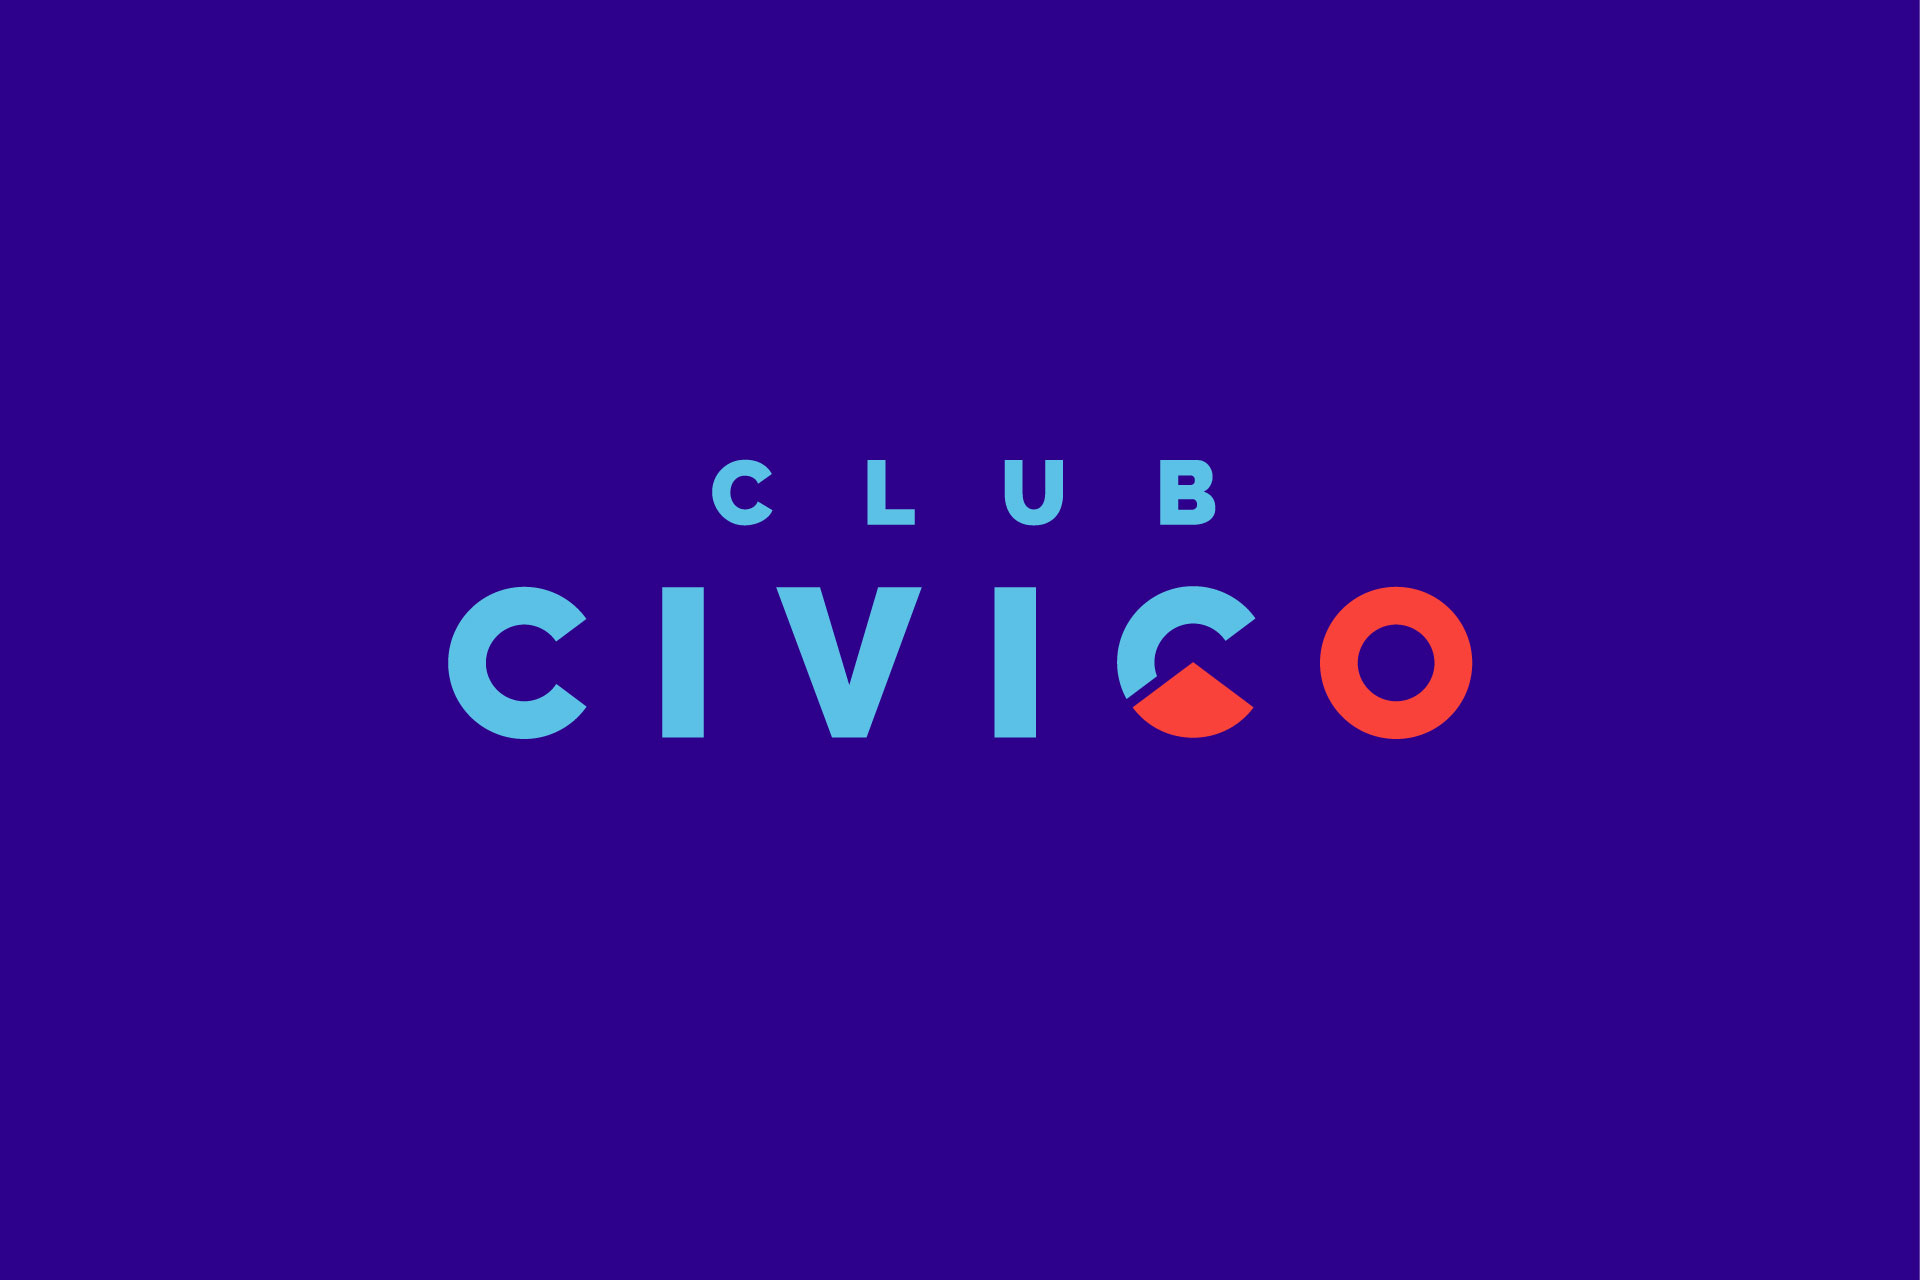 CLUB-CIVICO-blue.jpg